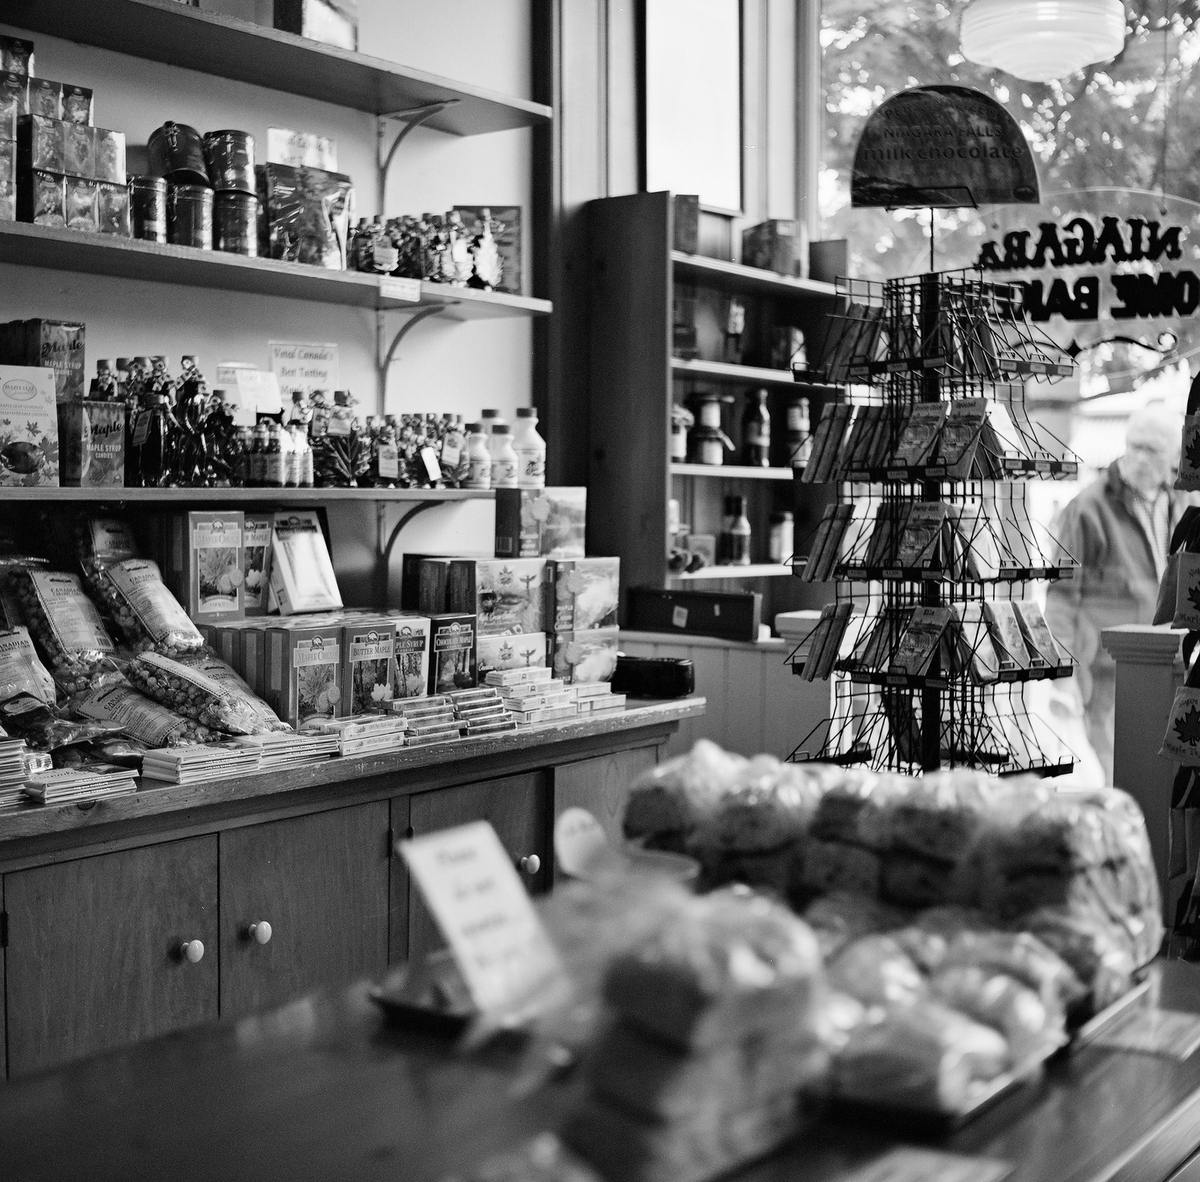 Charming little bakery in Niagara-On-The-Lake